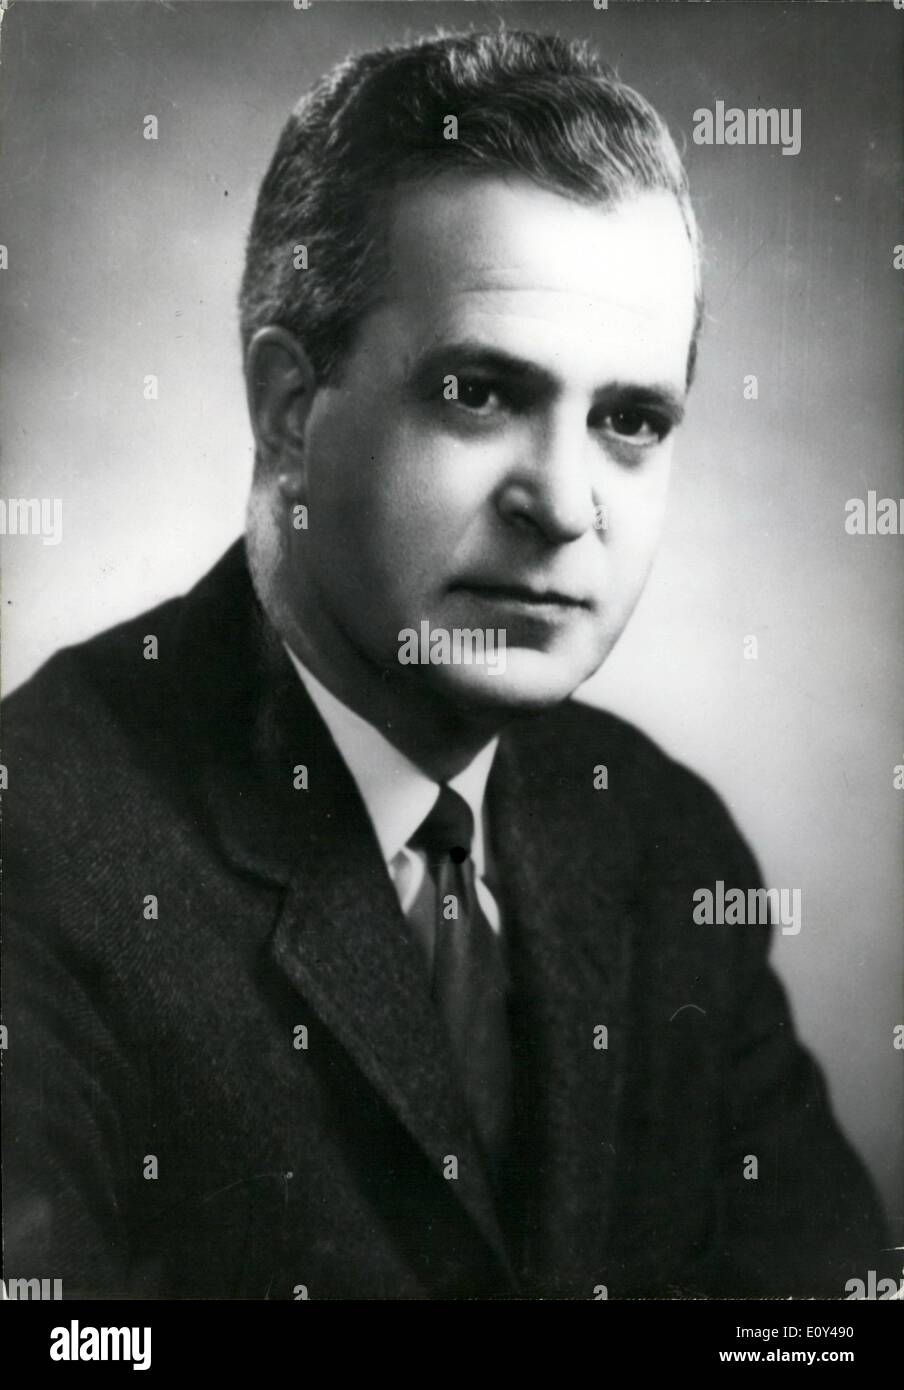 Oct. 10, 1968 - Queb EC: Jean-Jacques Bertrand takes over: Photo Shows Portrait of Jean-Jacques B ertrand, former Minister of Justice, who succeeds Daniel Johnson as Prime Minister of Quebec. - Stock Image